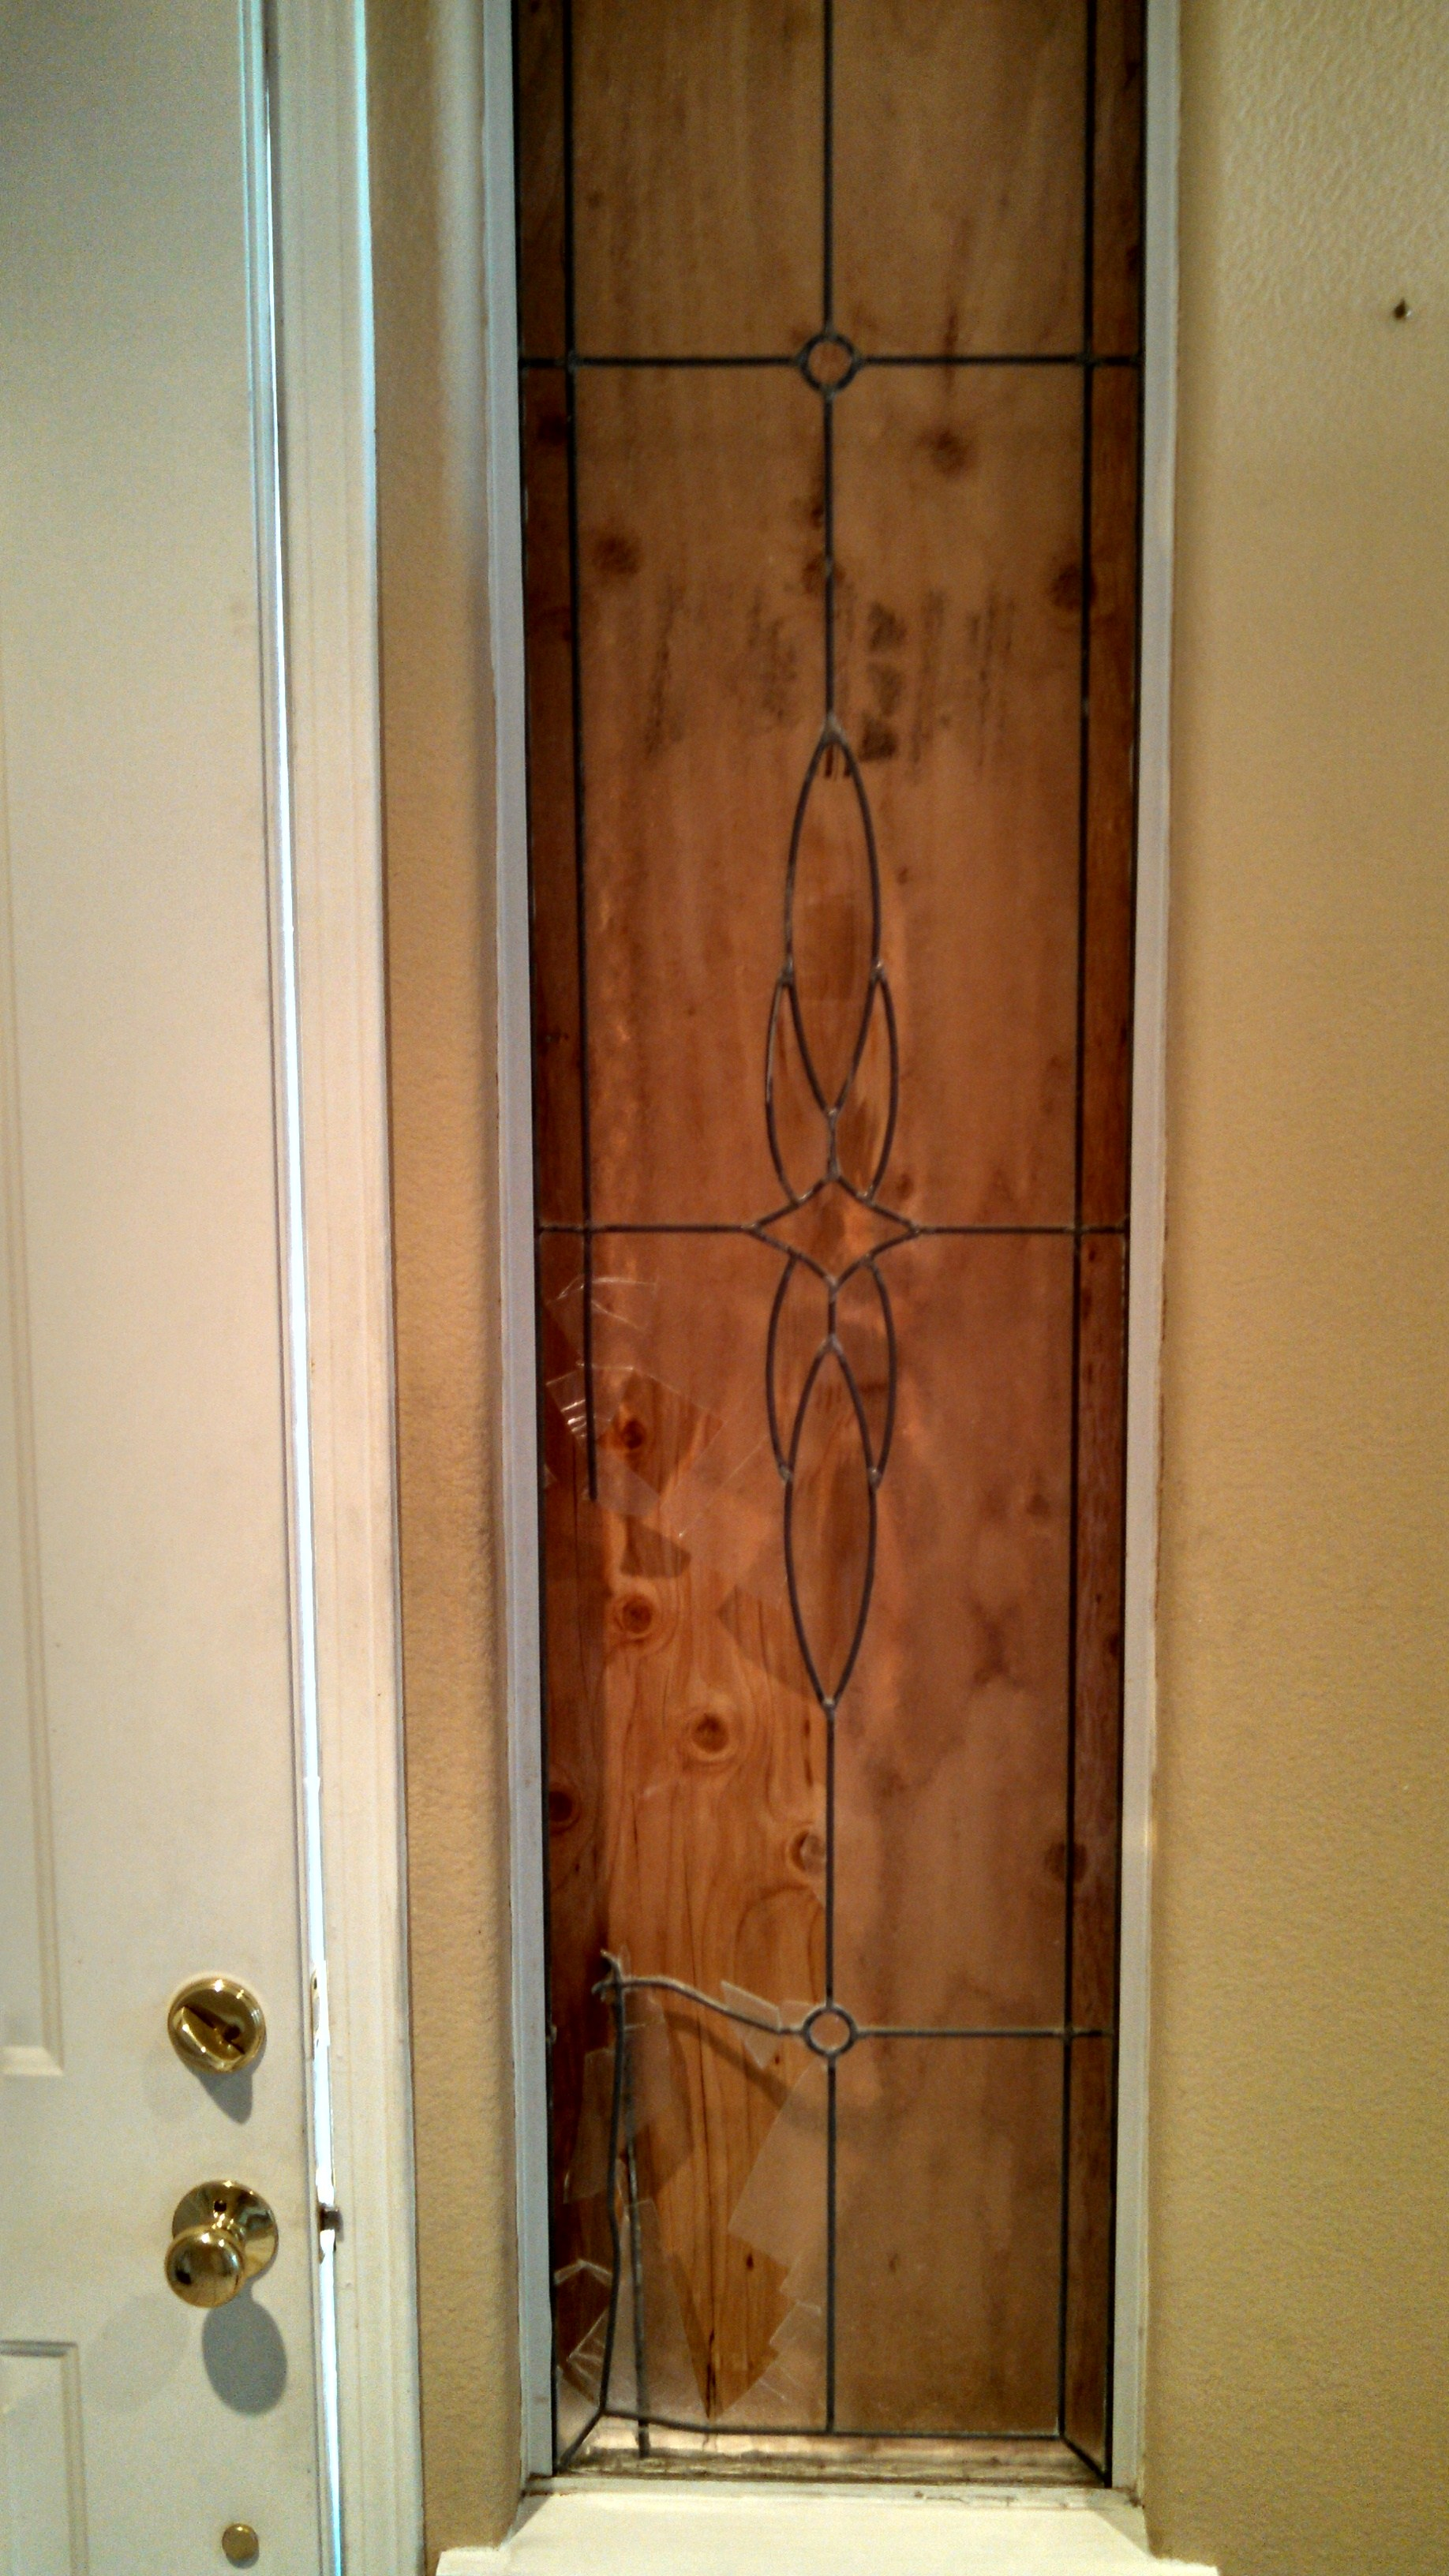 This sidelite was damaged by a soccer ball. The Shoppe pulled out the damaged piece, boarded up the opening, and repaired the panel where it was reinstalled into its home.